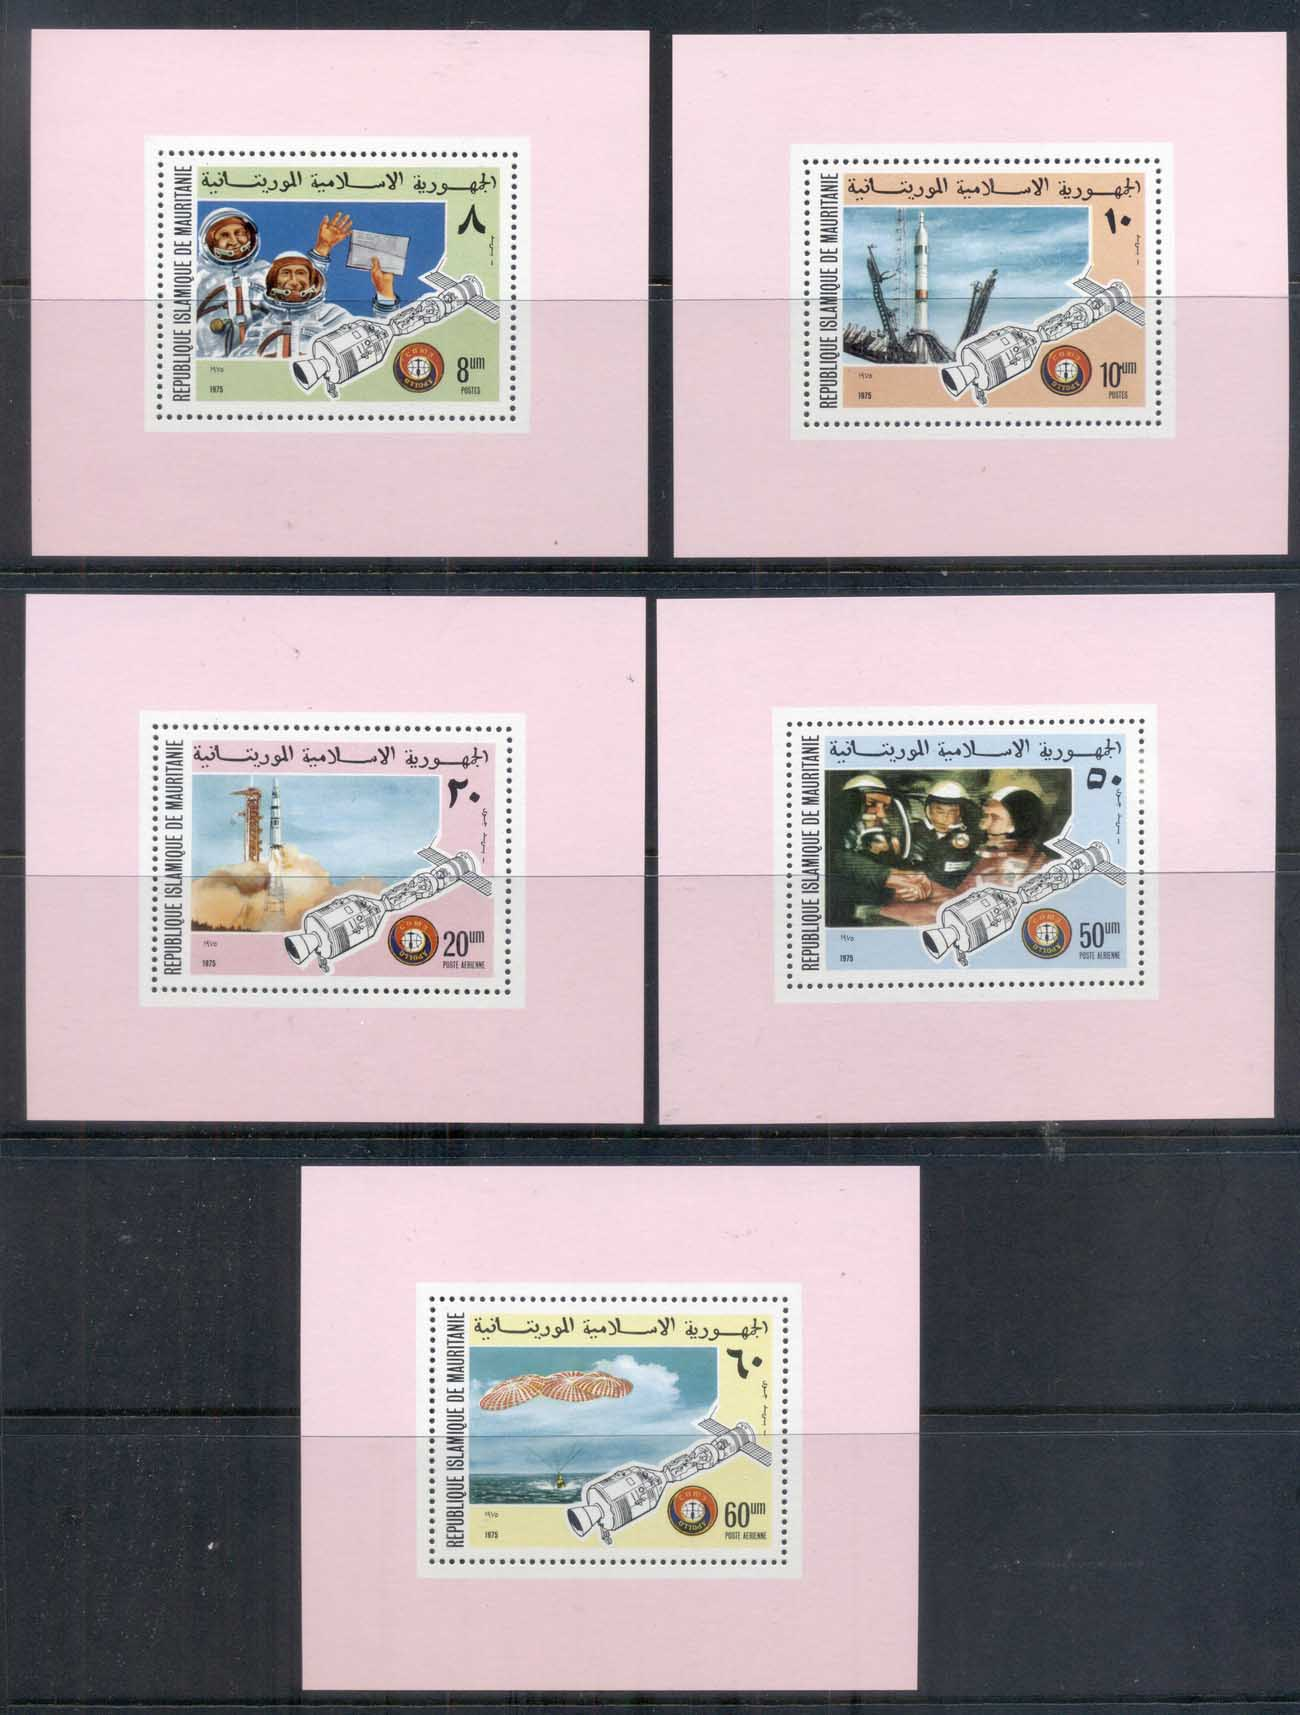 Mauritania 1975 Apollo-Soyuz Joint Russia/USA Space Project mini sheetlets MUH